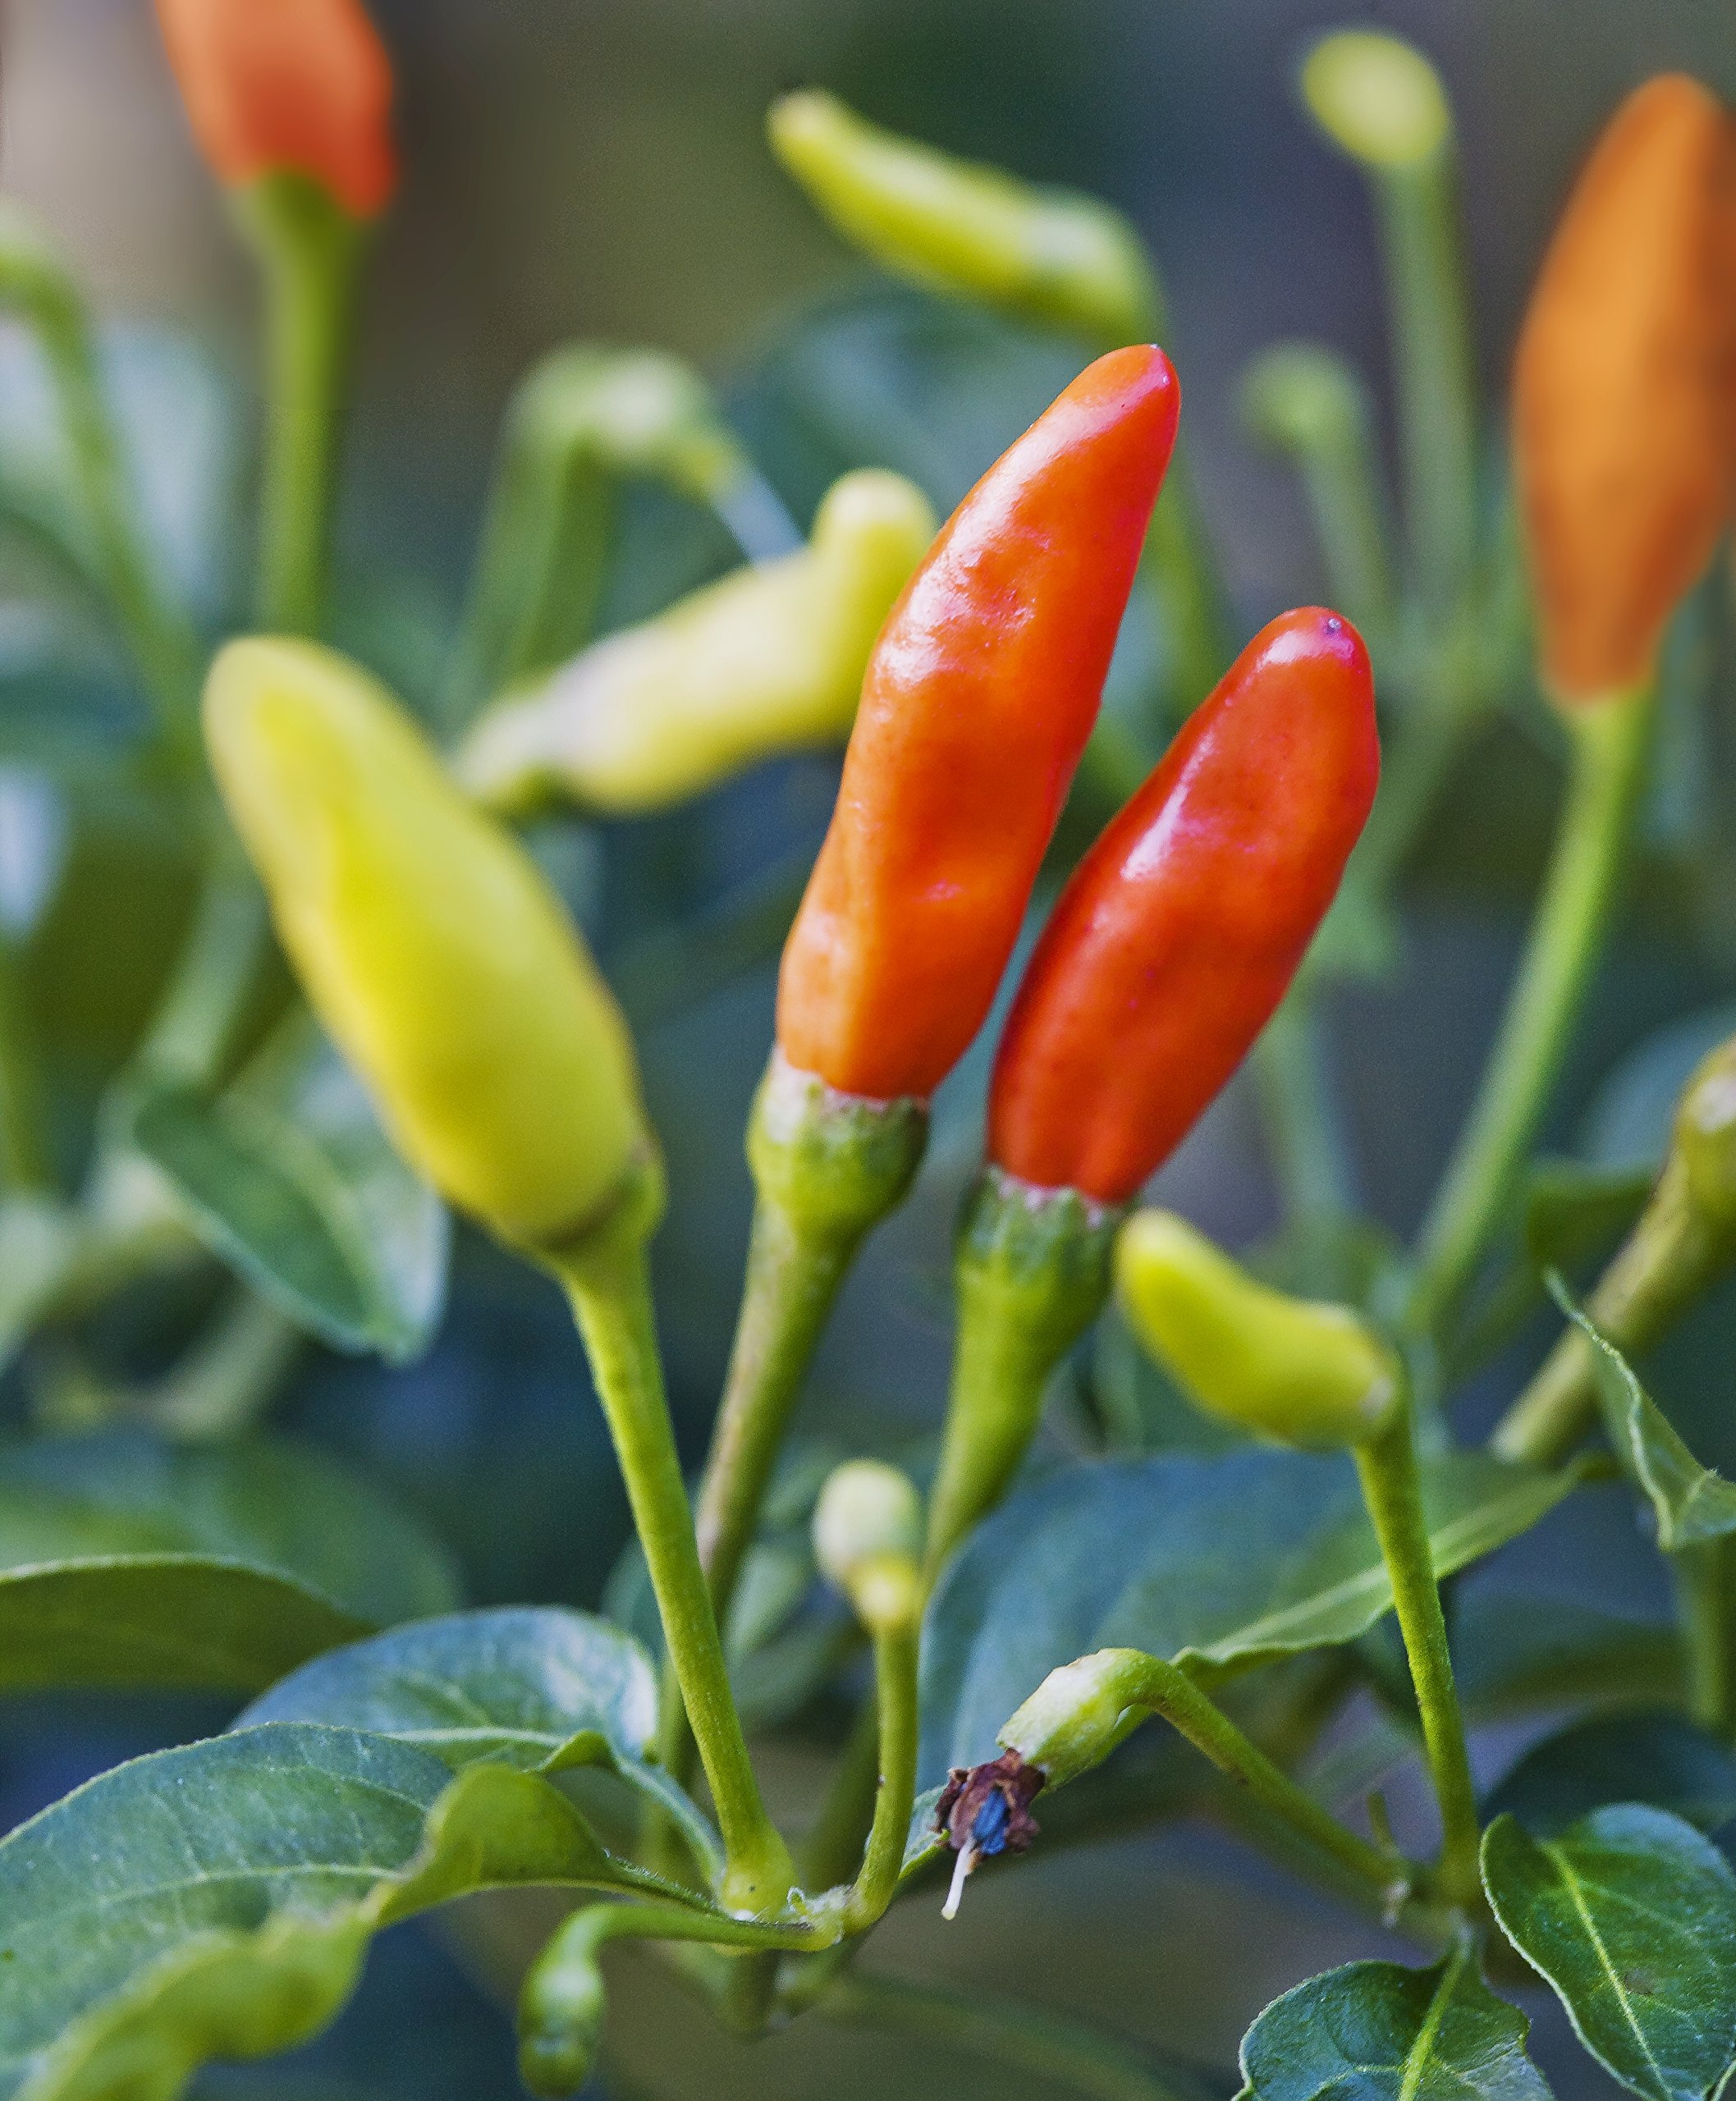 Bonnie Plants Tabasco Pepper - 4 Pack Live Plants, 1.5 - 2 Inch Fruits, 24 - 36 Inch Tall Plants, Great For Pickling & Preserving by Bonnie Plants (Image #6)